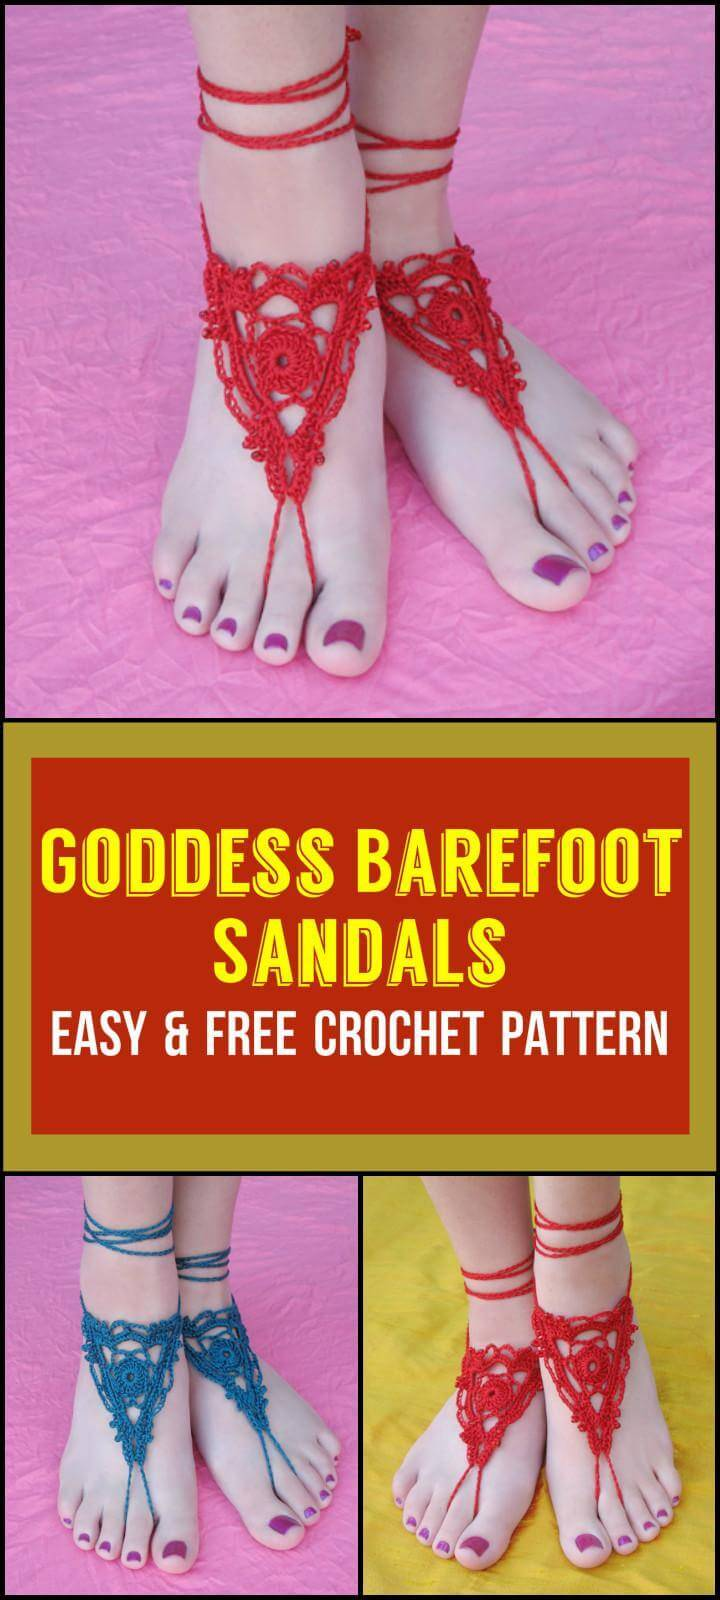 Goddess Barefoot Sandals Easy  Free Crochet Pattern